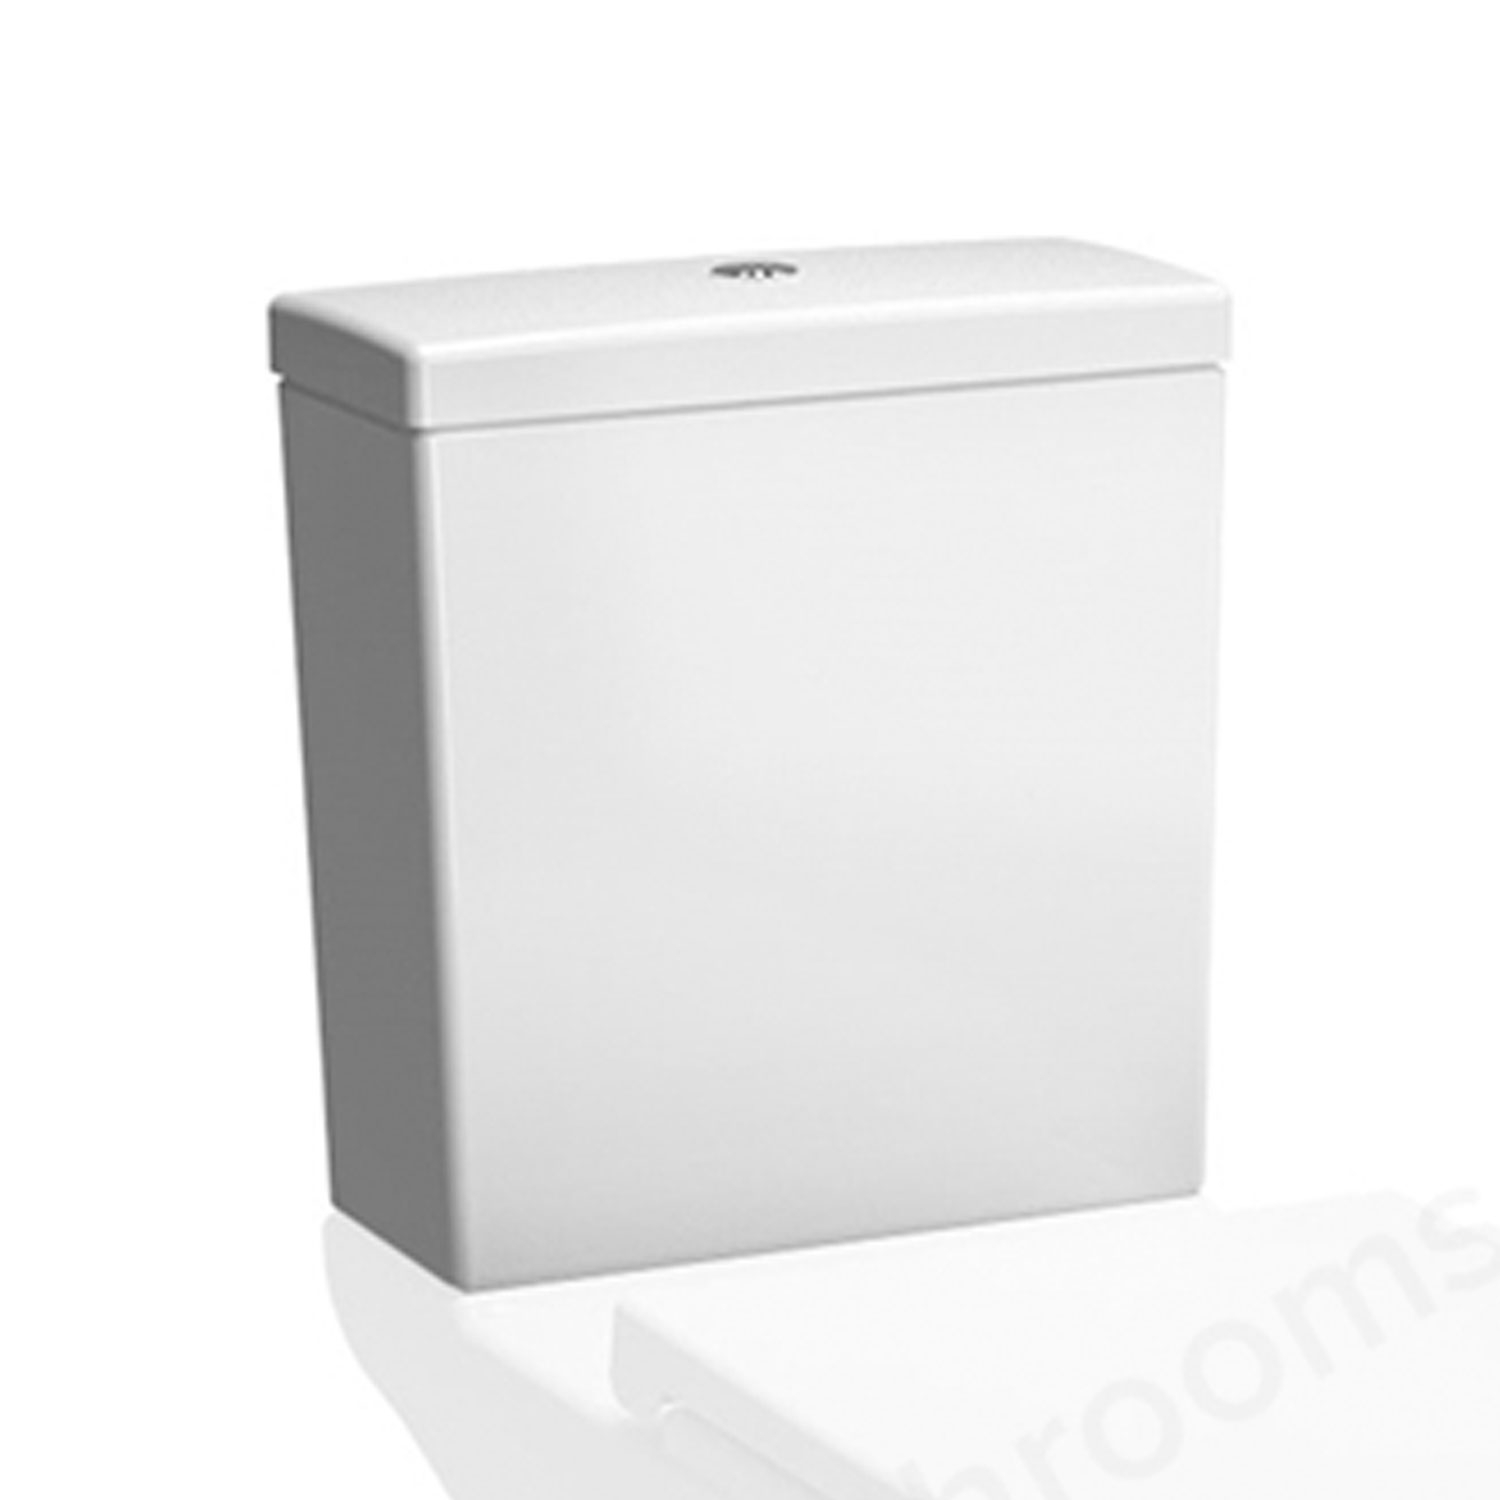 VitrA S50 Comfort Height Close Coupled Toilet WC Push Button Cistern - Soft Close Seat-2